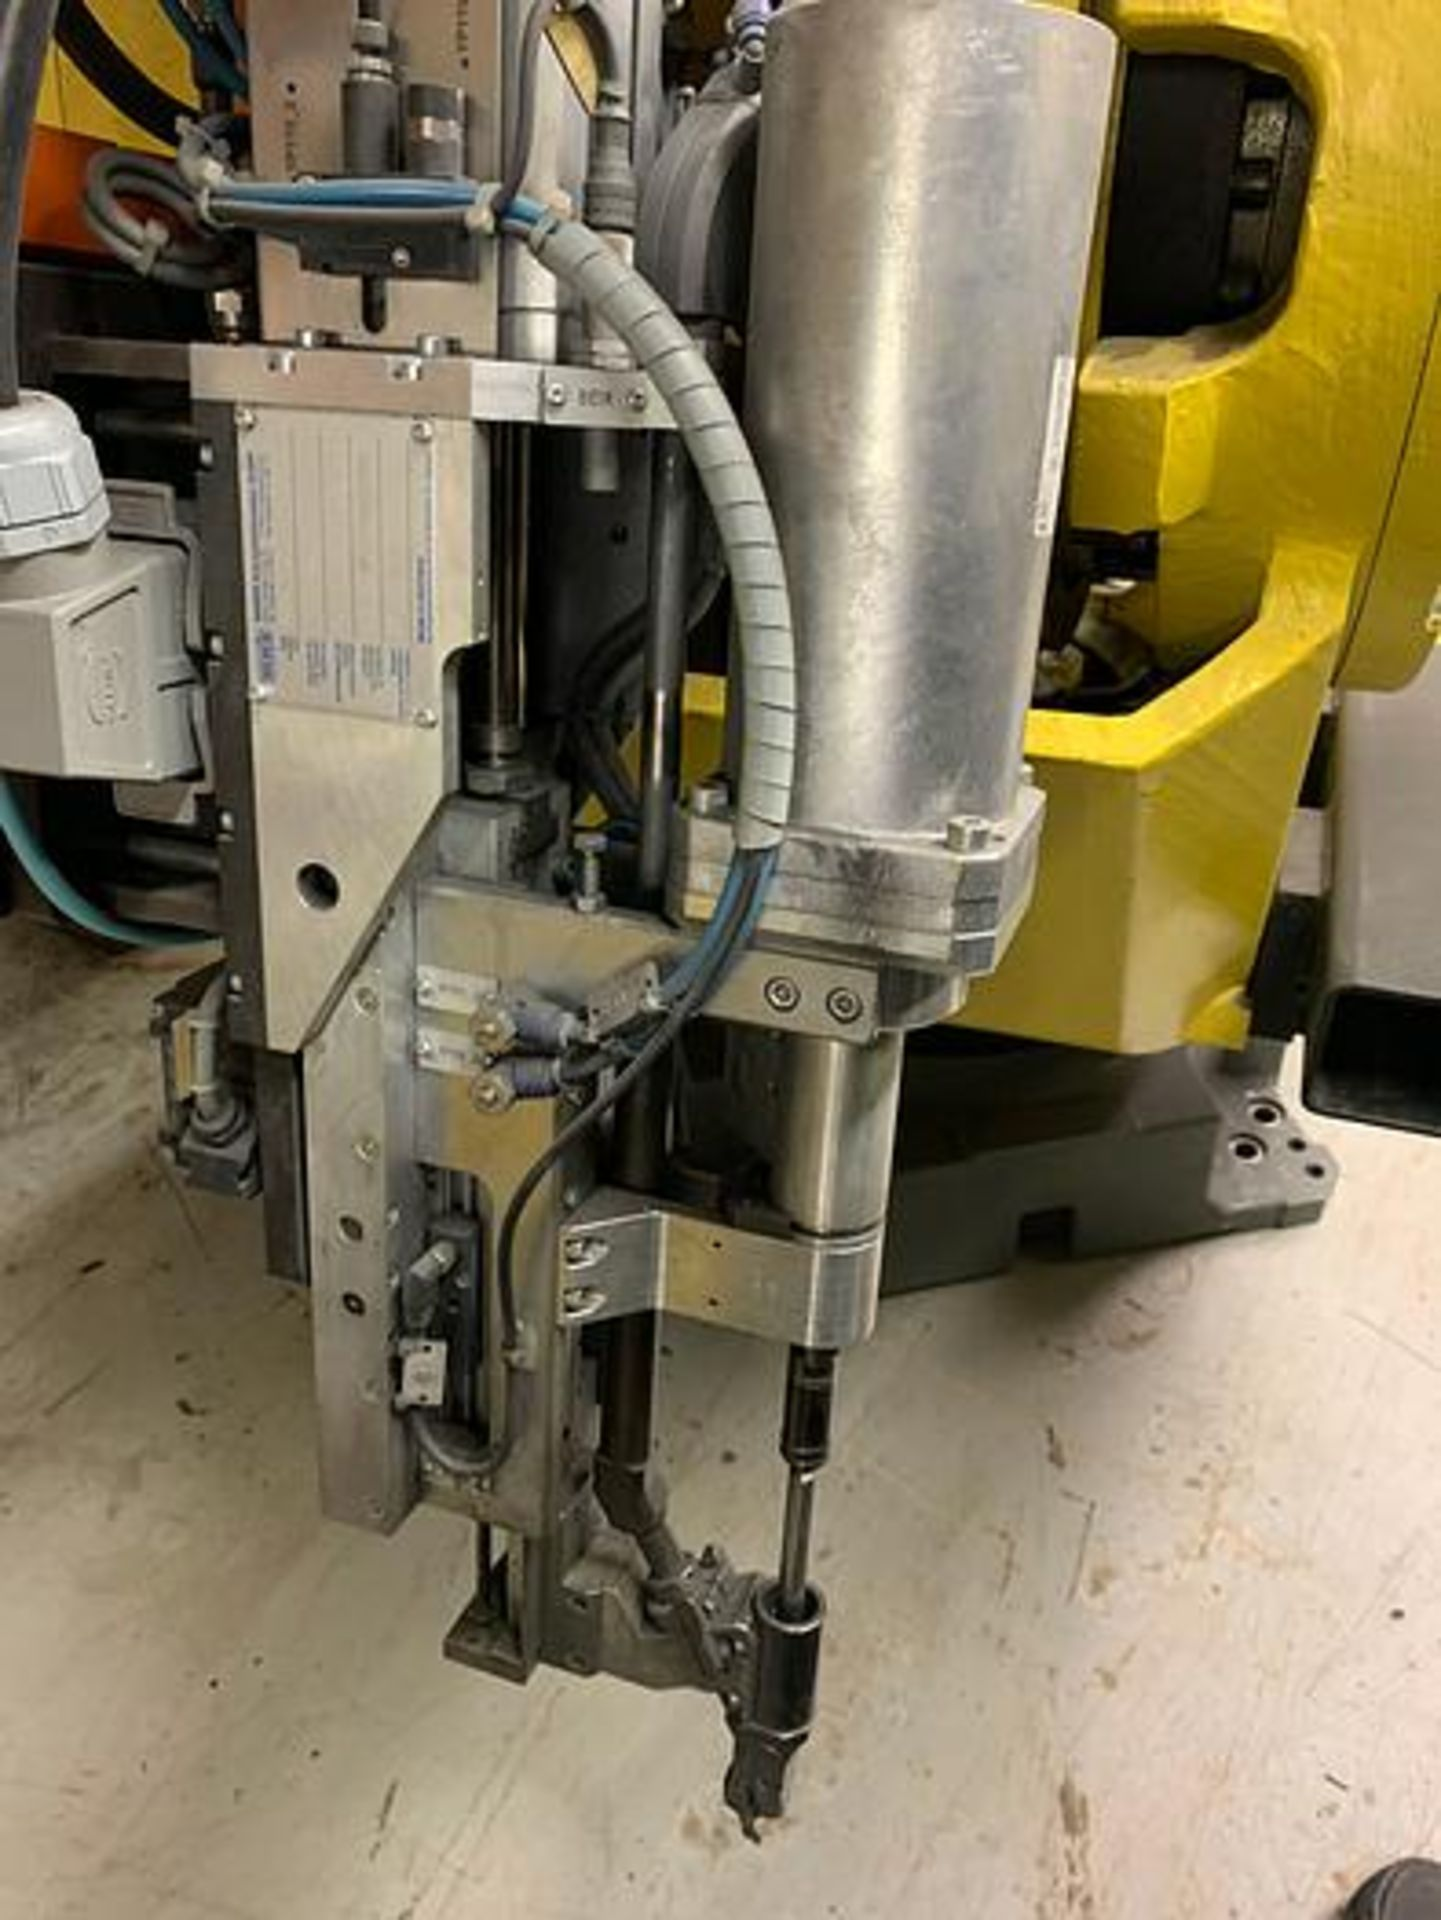 FANUC M900iA/350 6 AXIS ROBOT WITH R30iA CONTROLLER MACHINE, CABLES & TEACH SN F111634, YEAR 2011 - Image 4 of 13